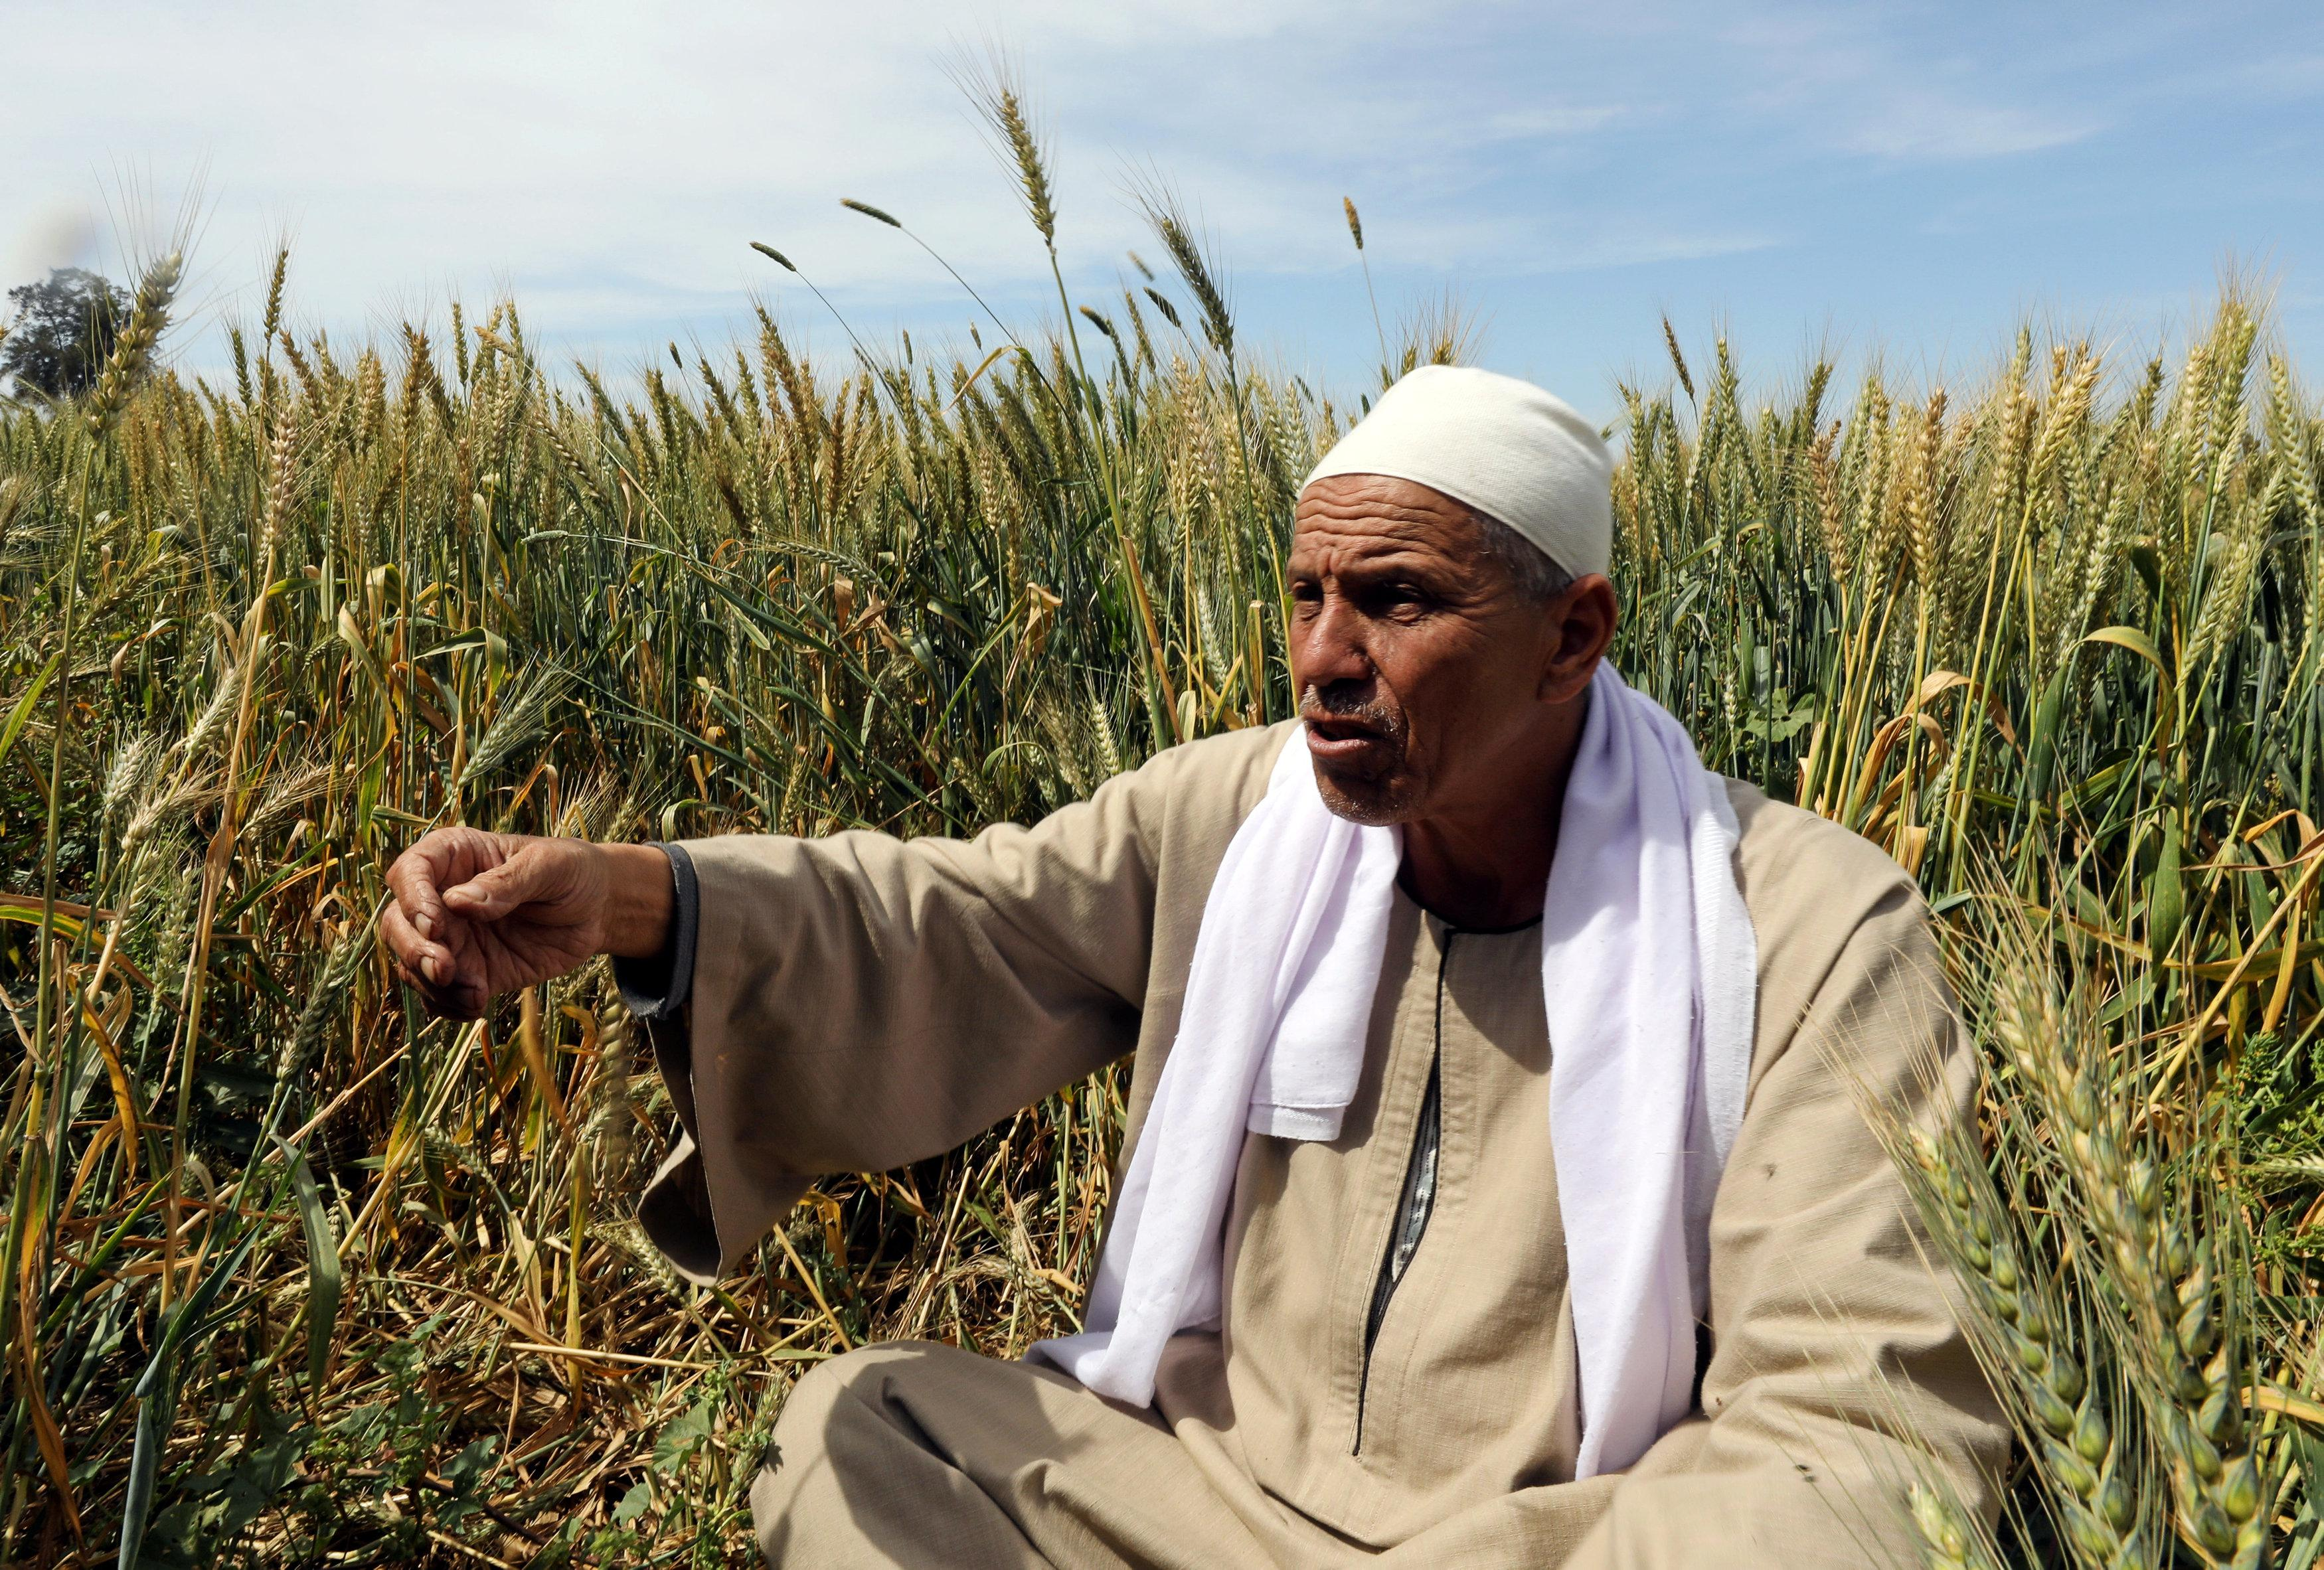 Farmer Mohamed Abdelkhaleq speaks during an interview with Reuters in a field in the Beheira Governorate, north of Cairo, Egypt April 4, 2018. Picture taken April 4, 2018. Mohamed Abd El Ghany